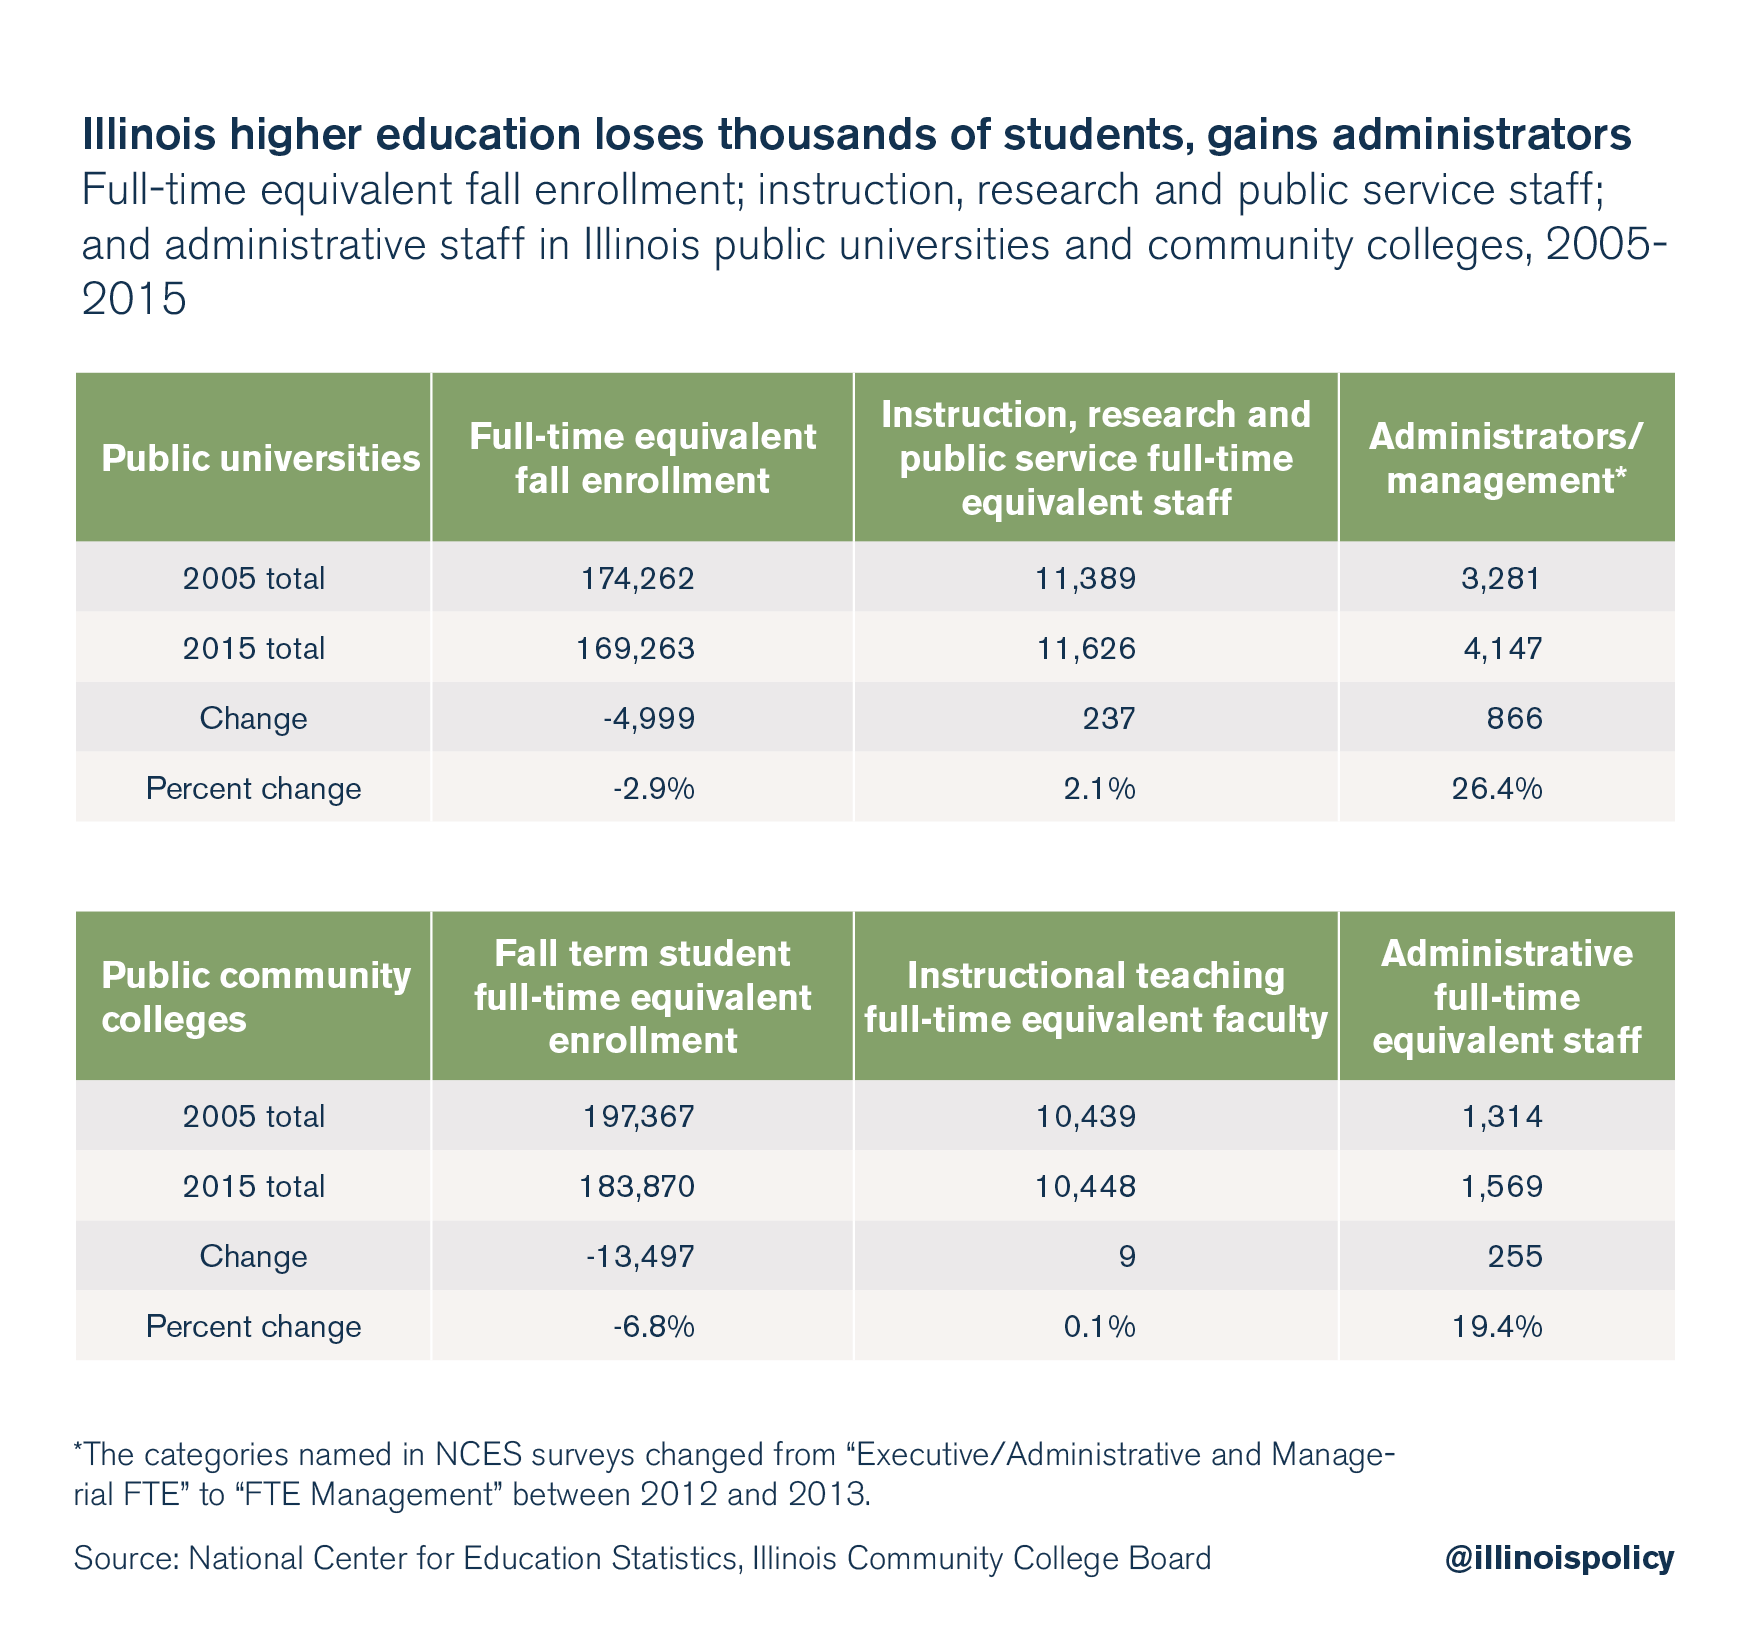 Illinois higher education loses thousands of students, gains administrators.